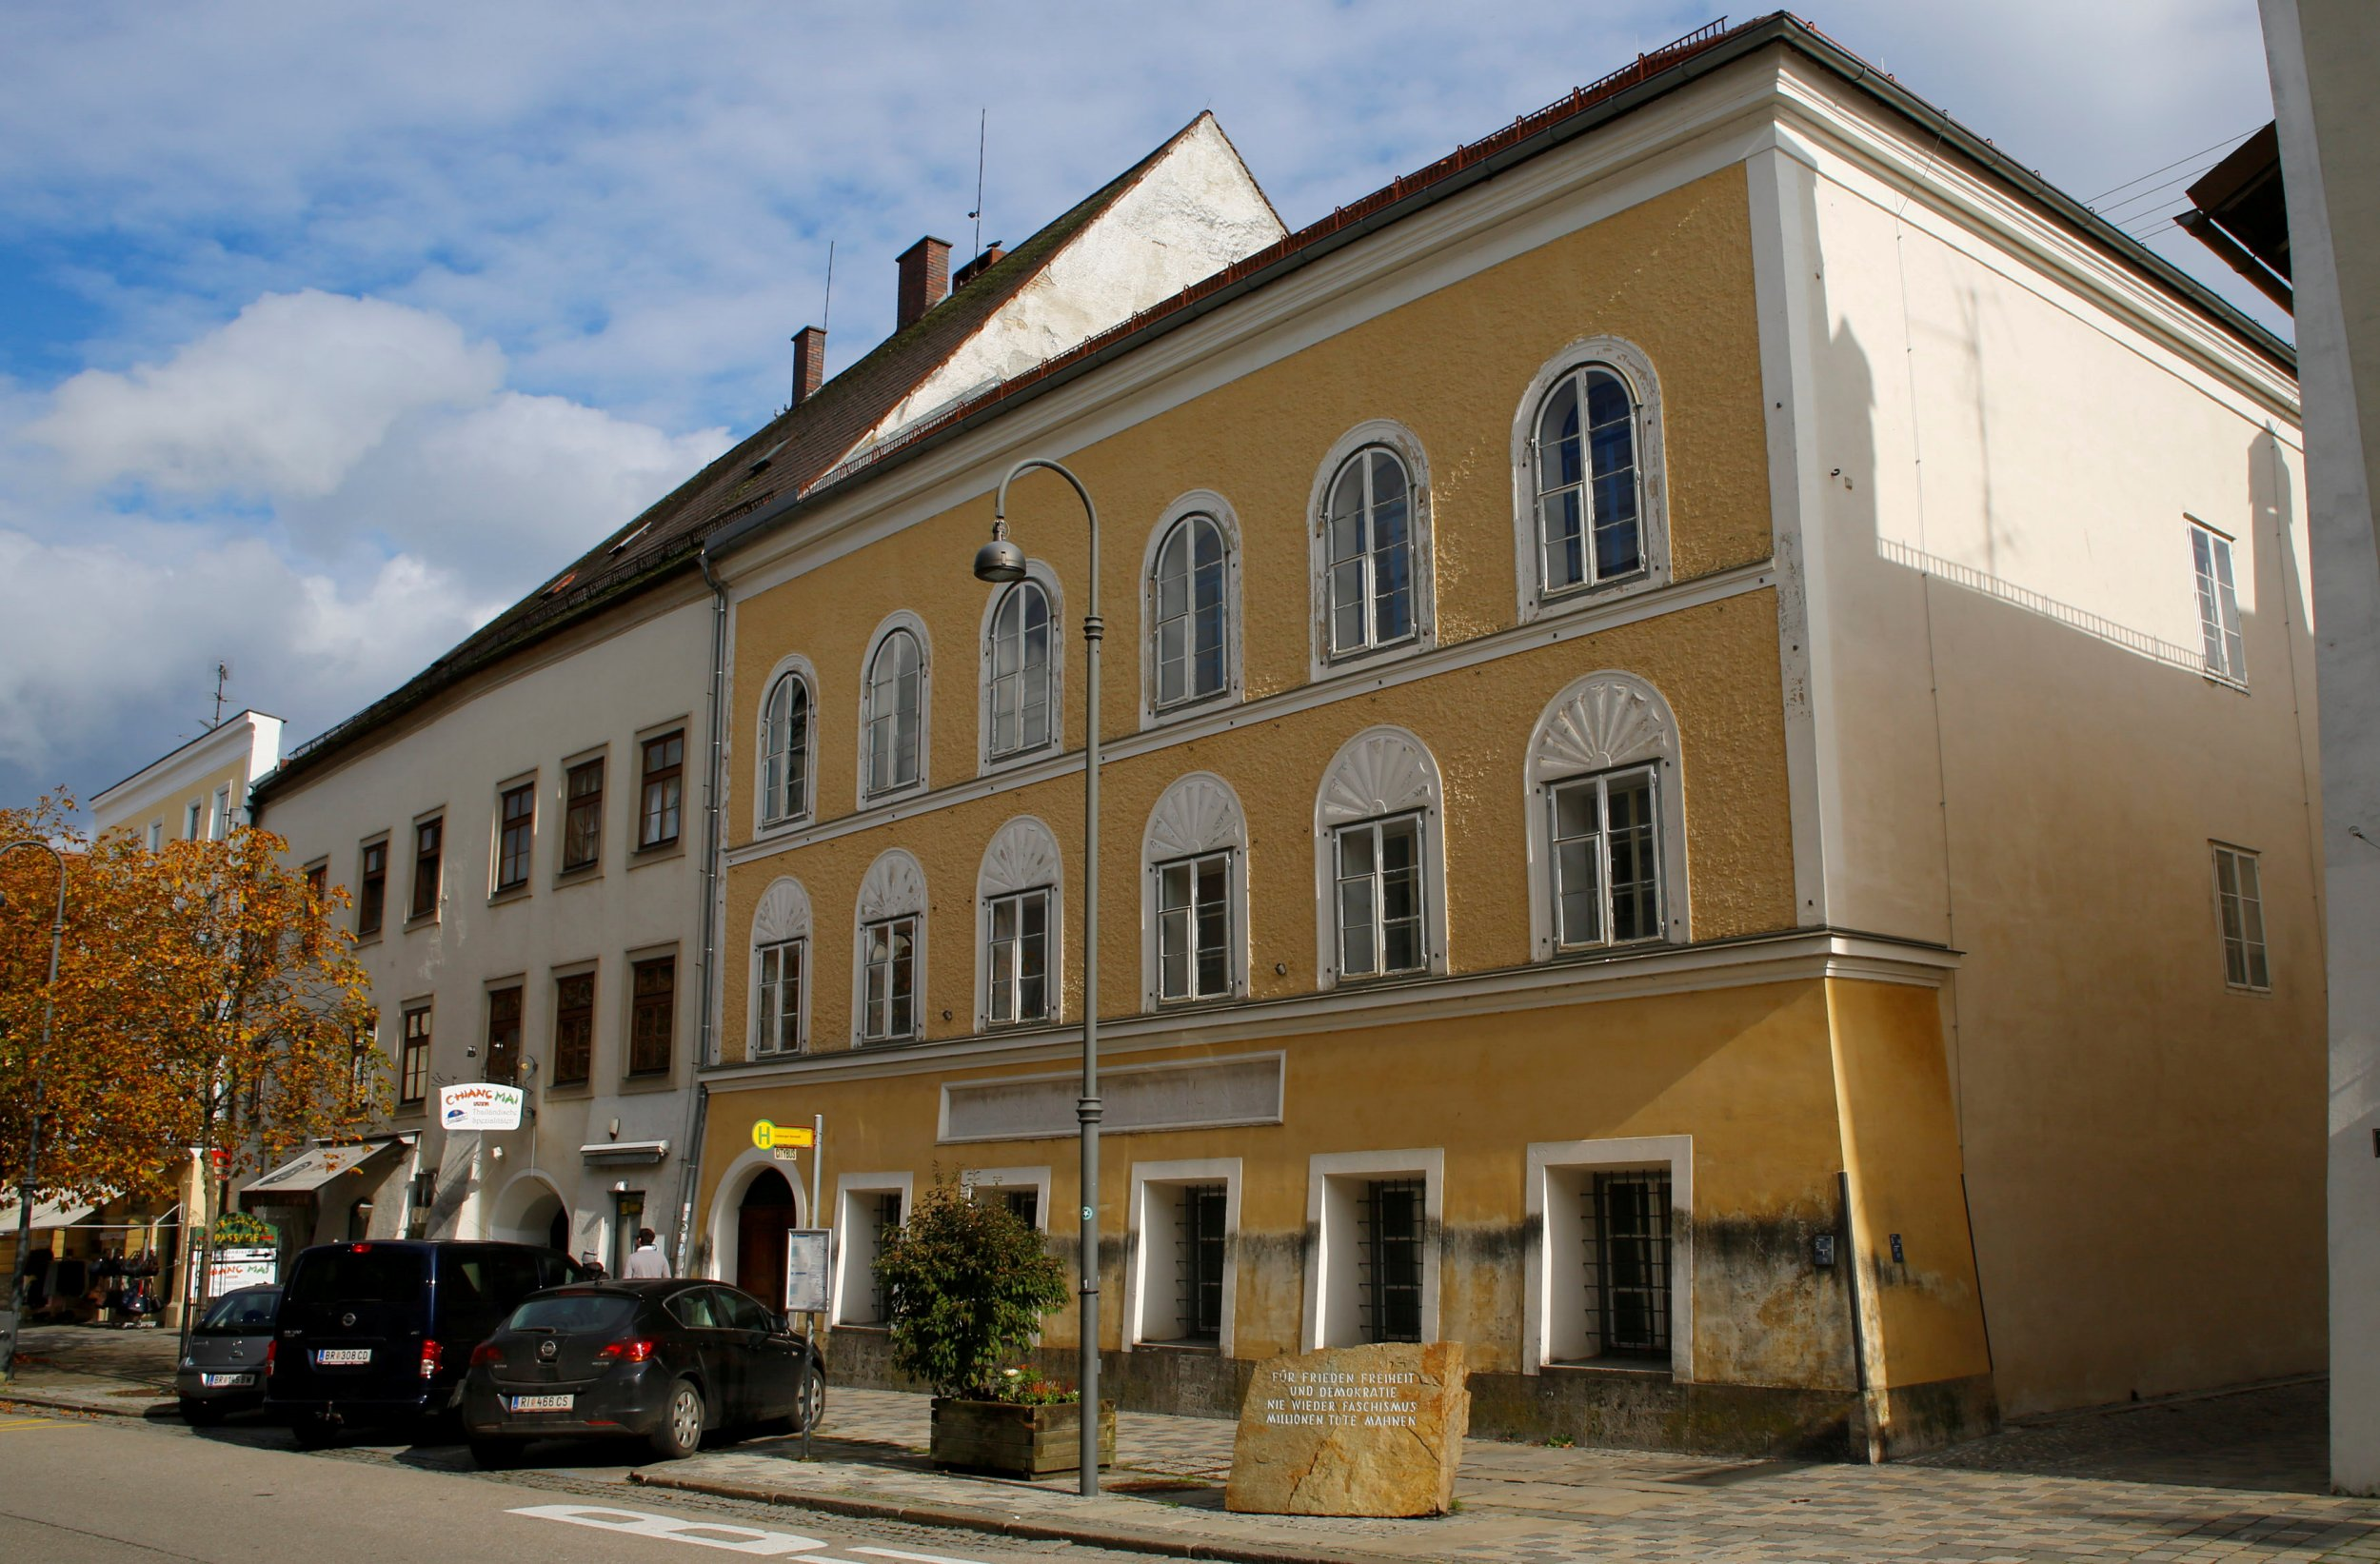 Hitler's house to be converted into centre for disability charity